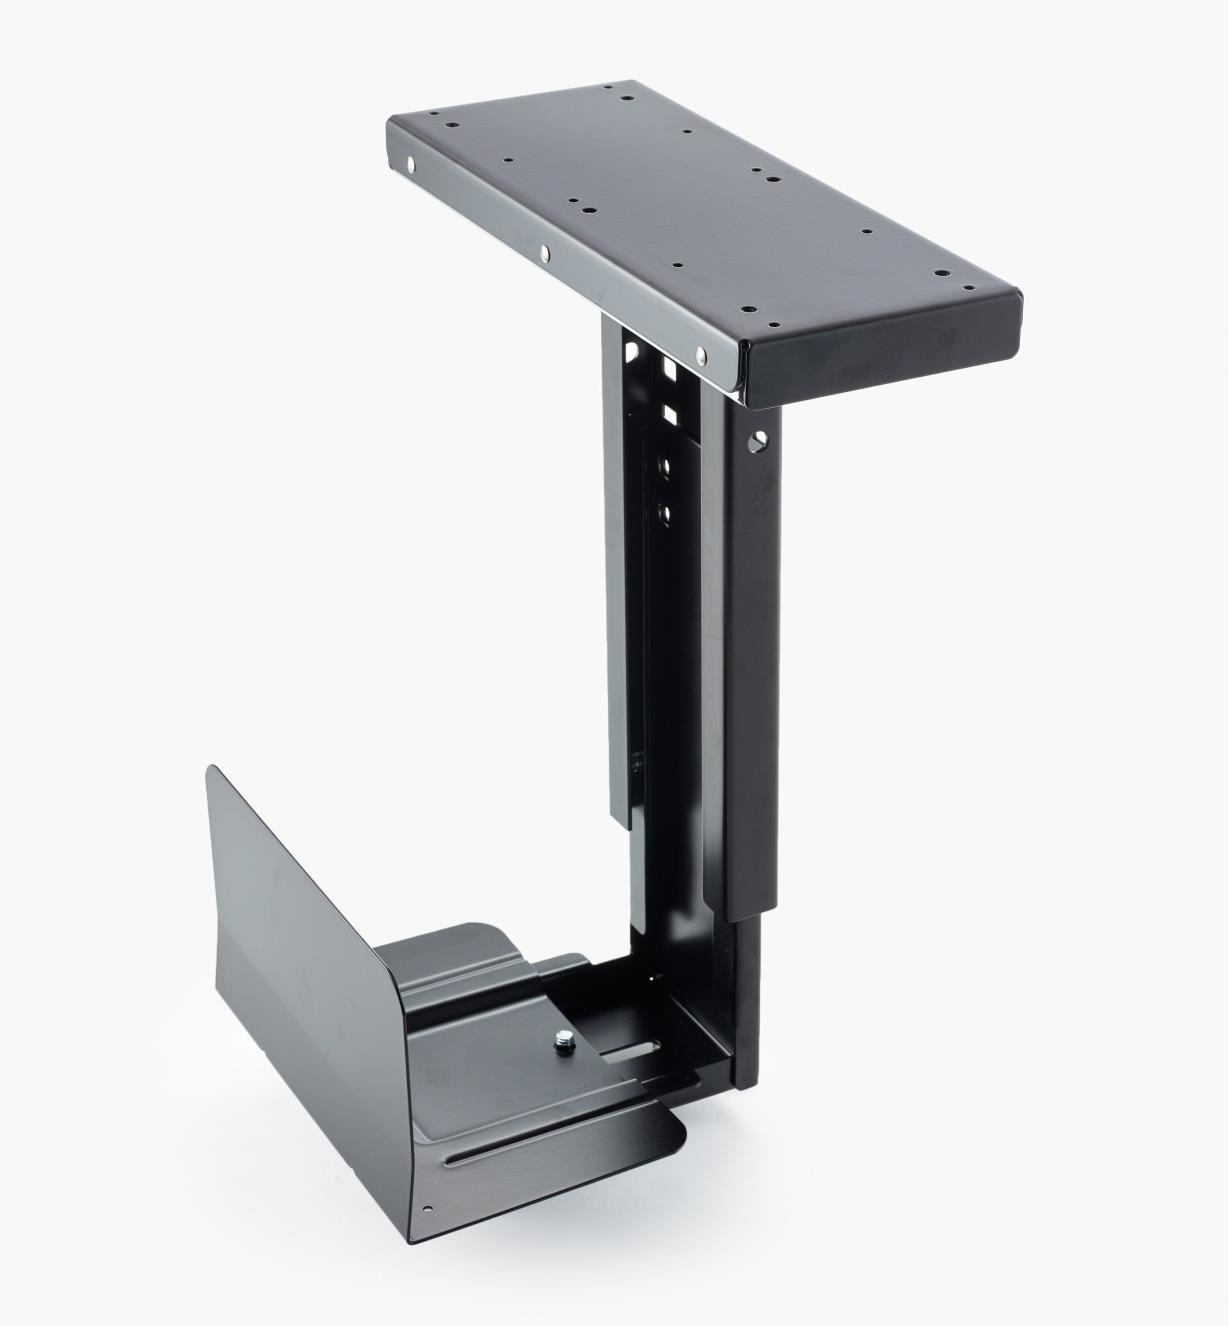 12K8630 - CPU Holder and Glide